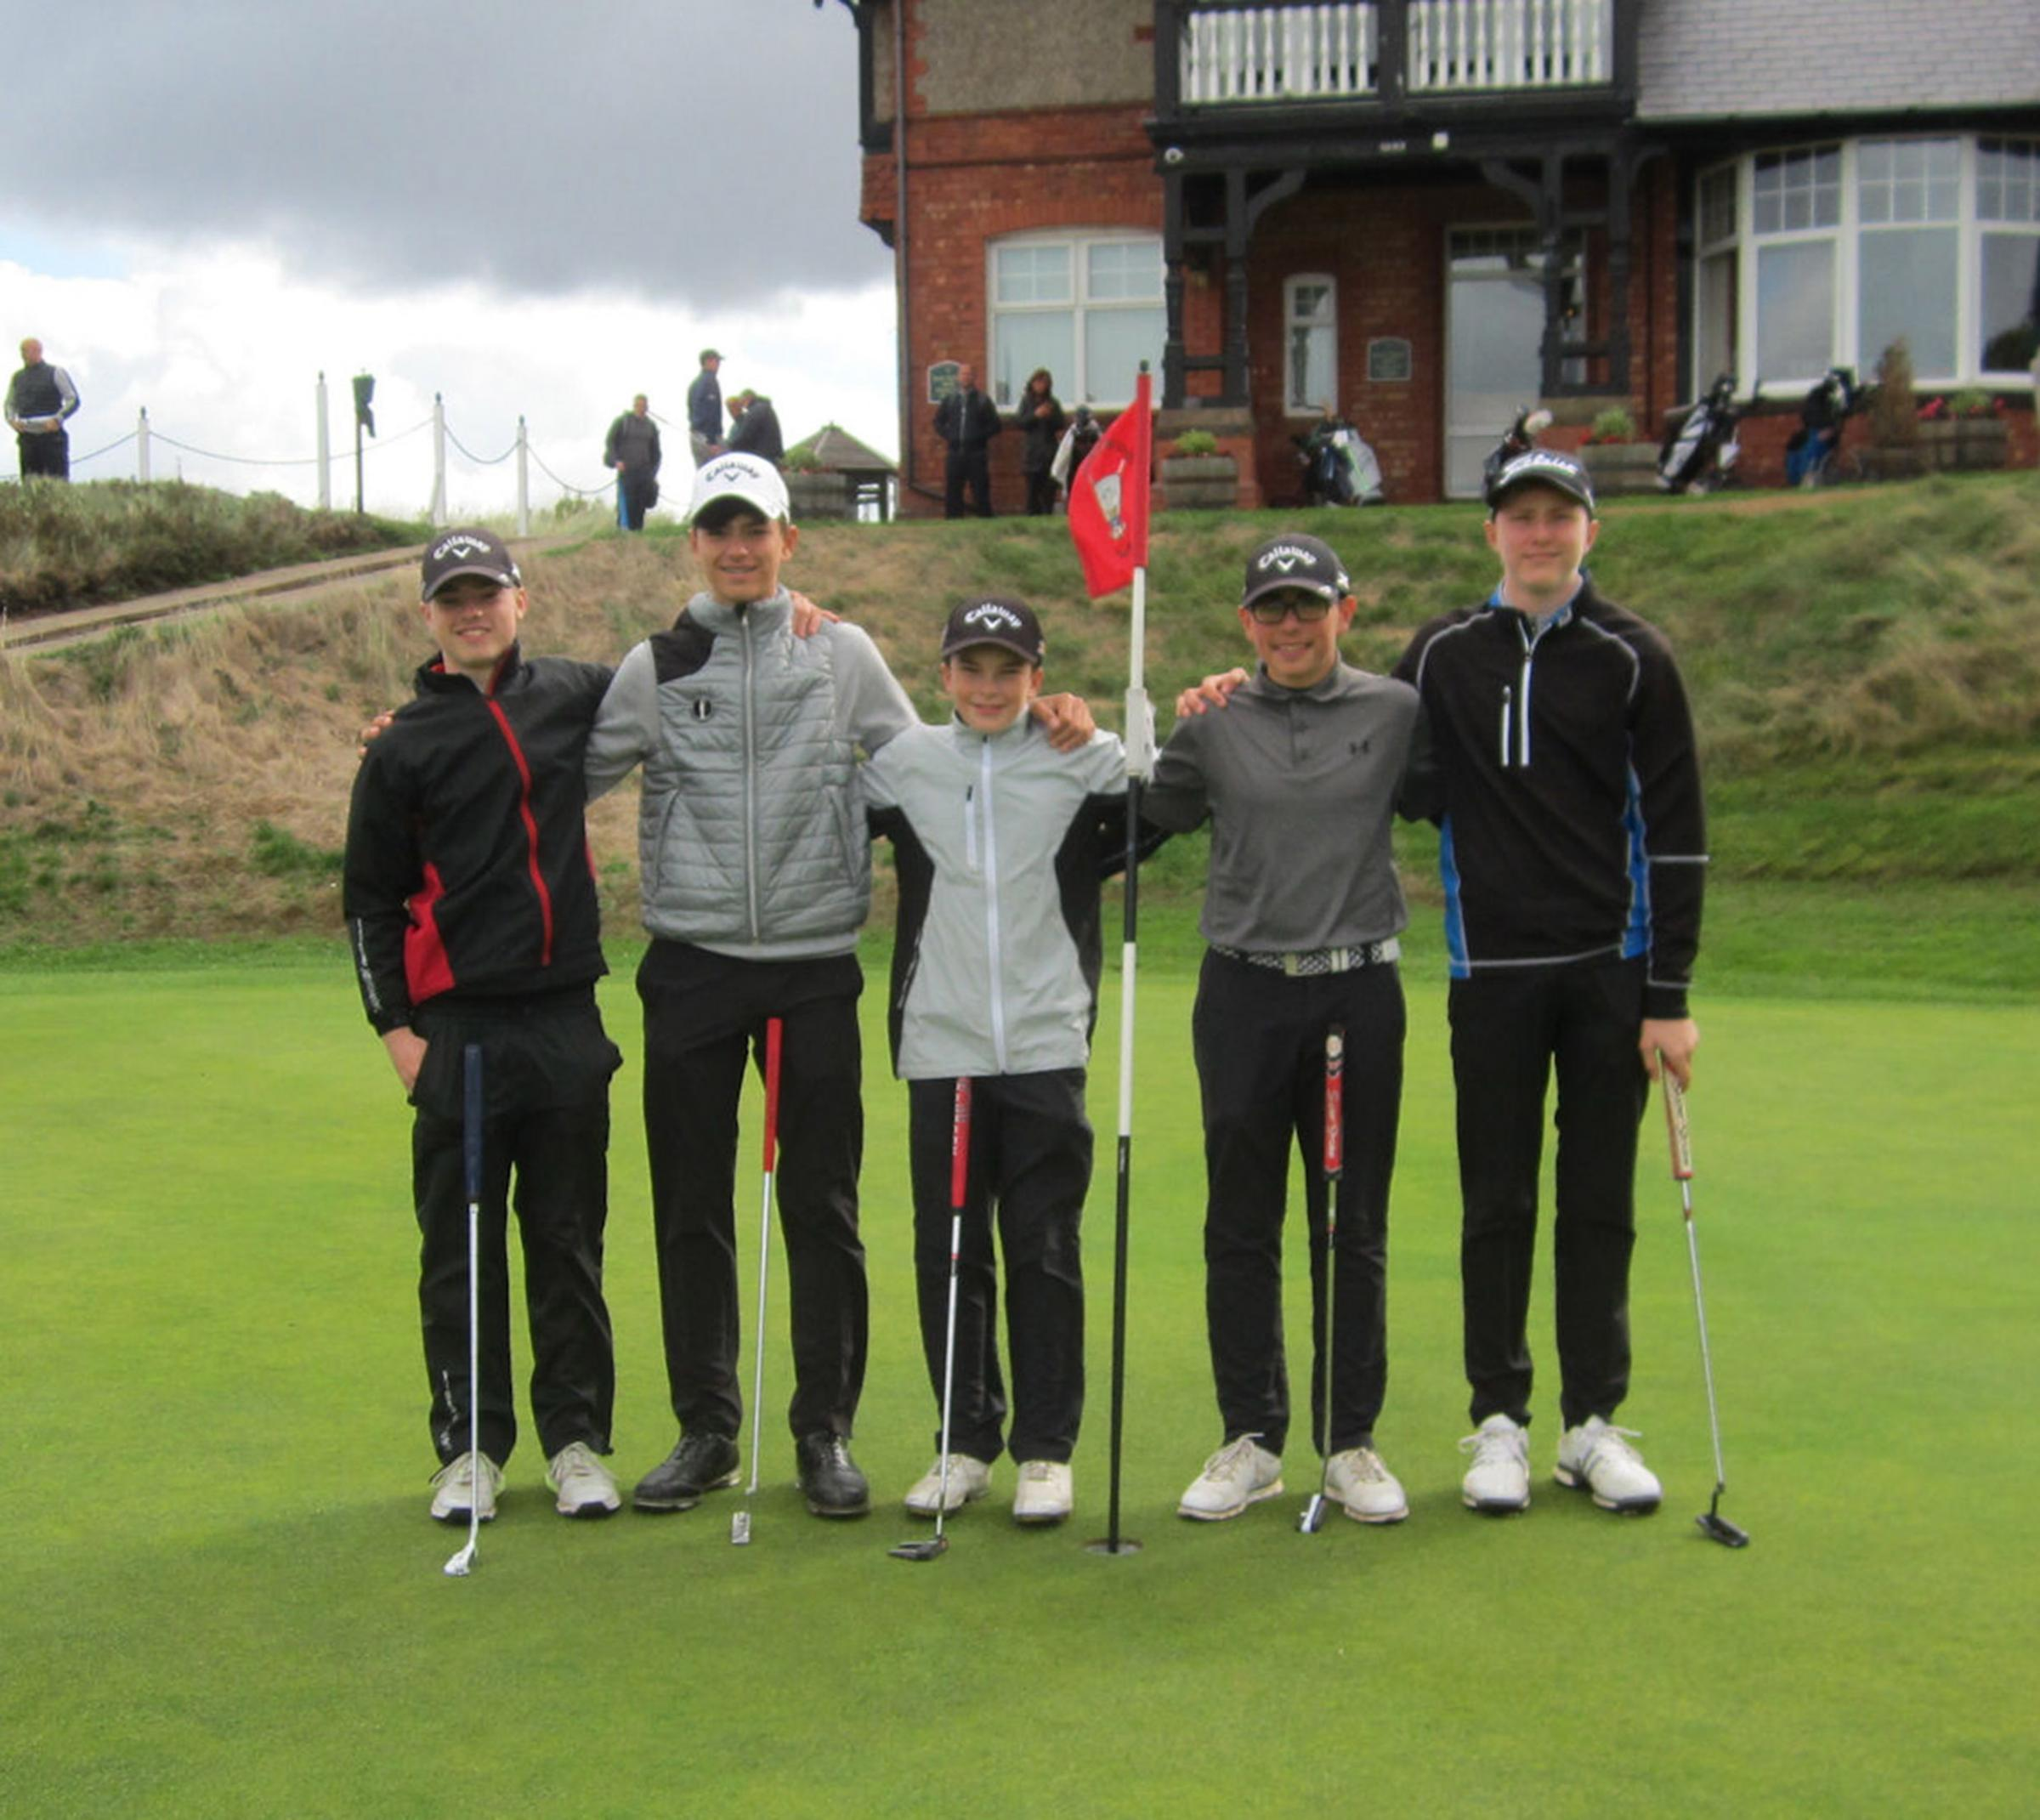 The Styal Golf Club quintet representing the Mid Cheshire League